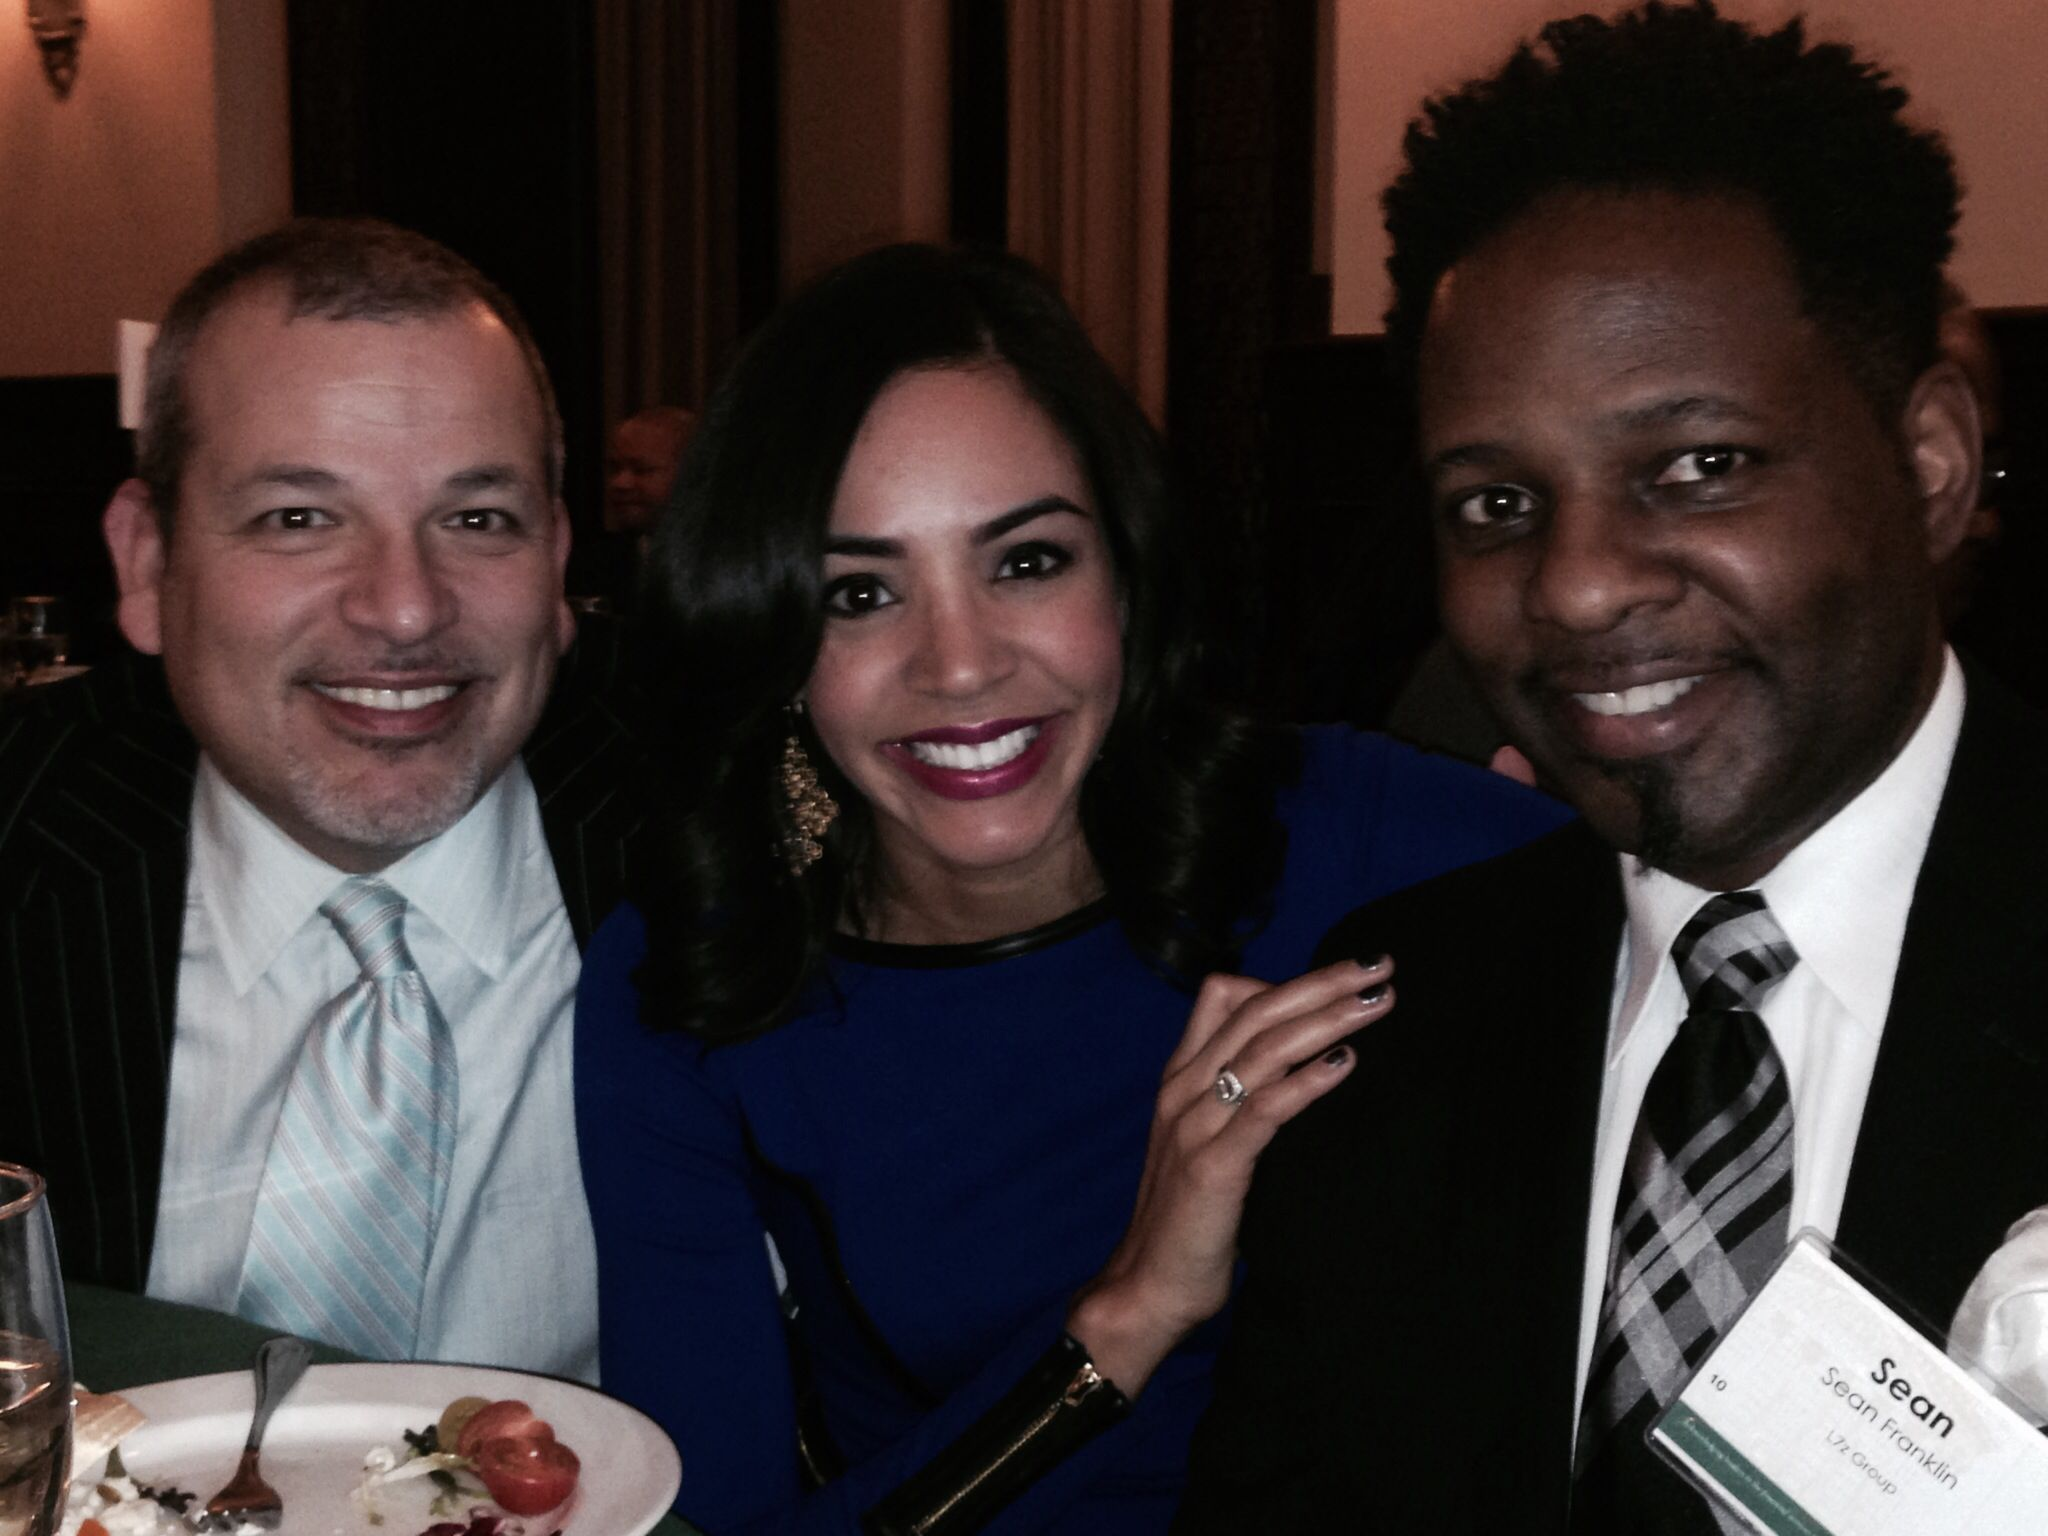 NGLCC 2014 Financial Services Award Dinner in NYC. With the beautiful Nina.